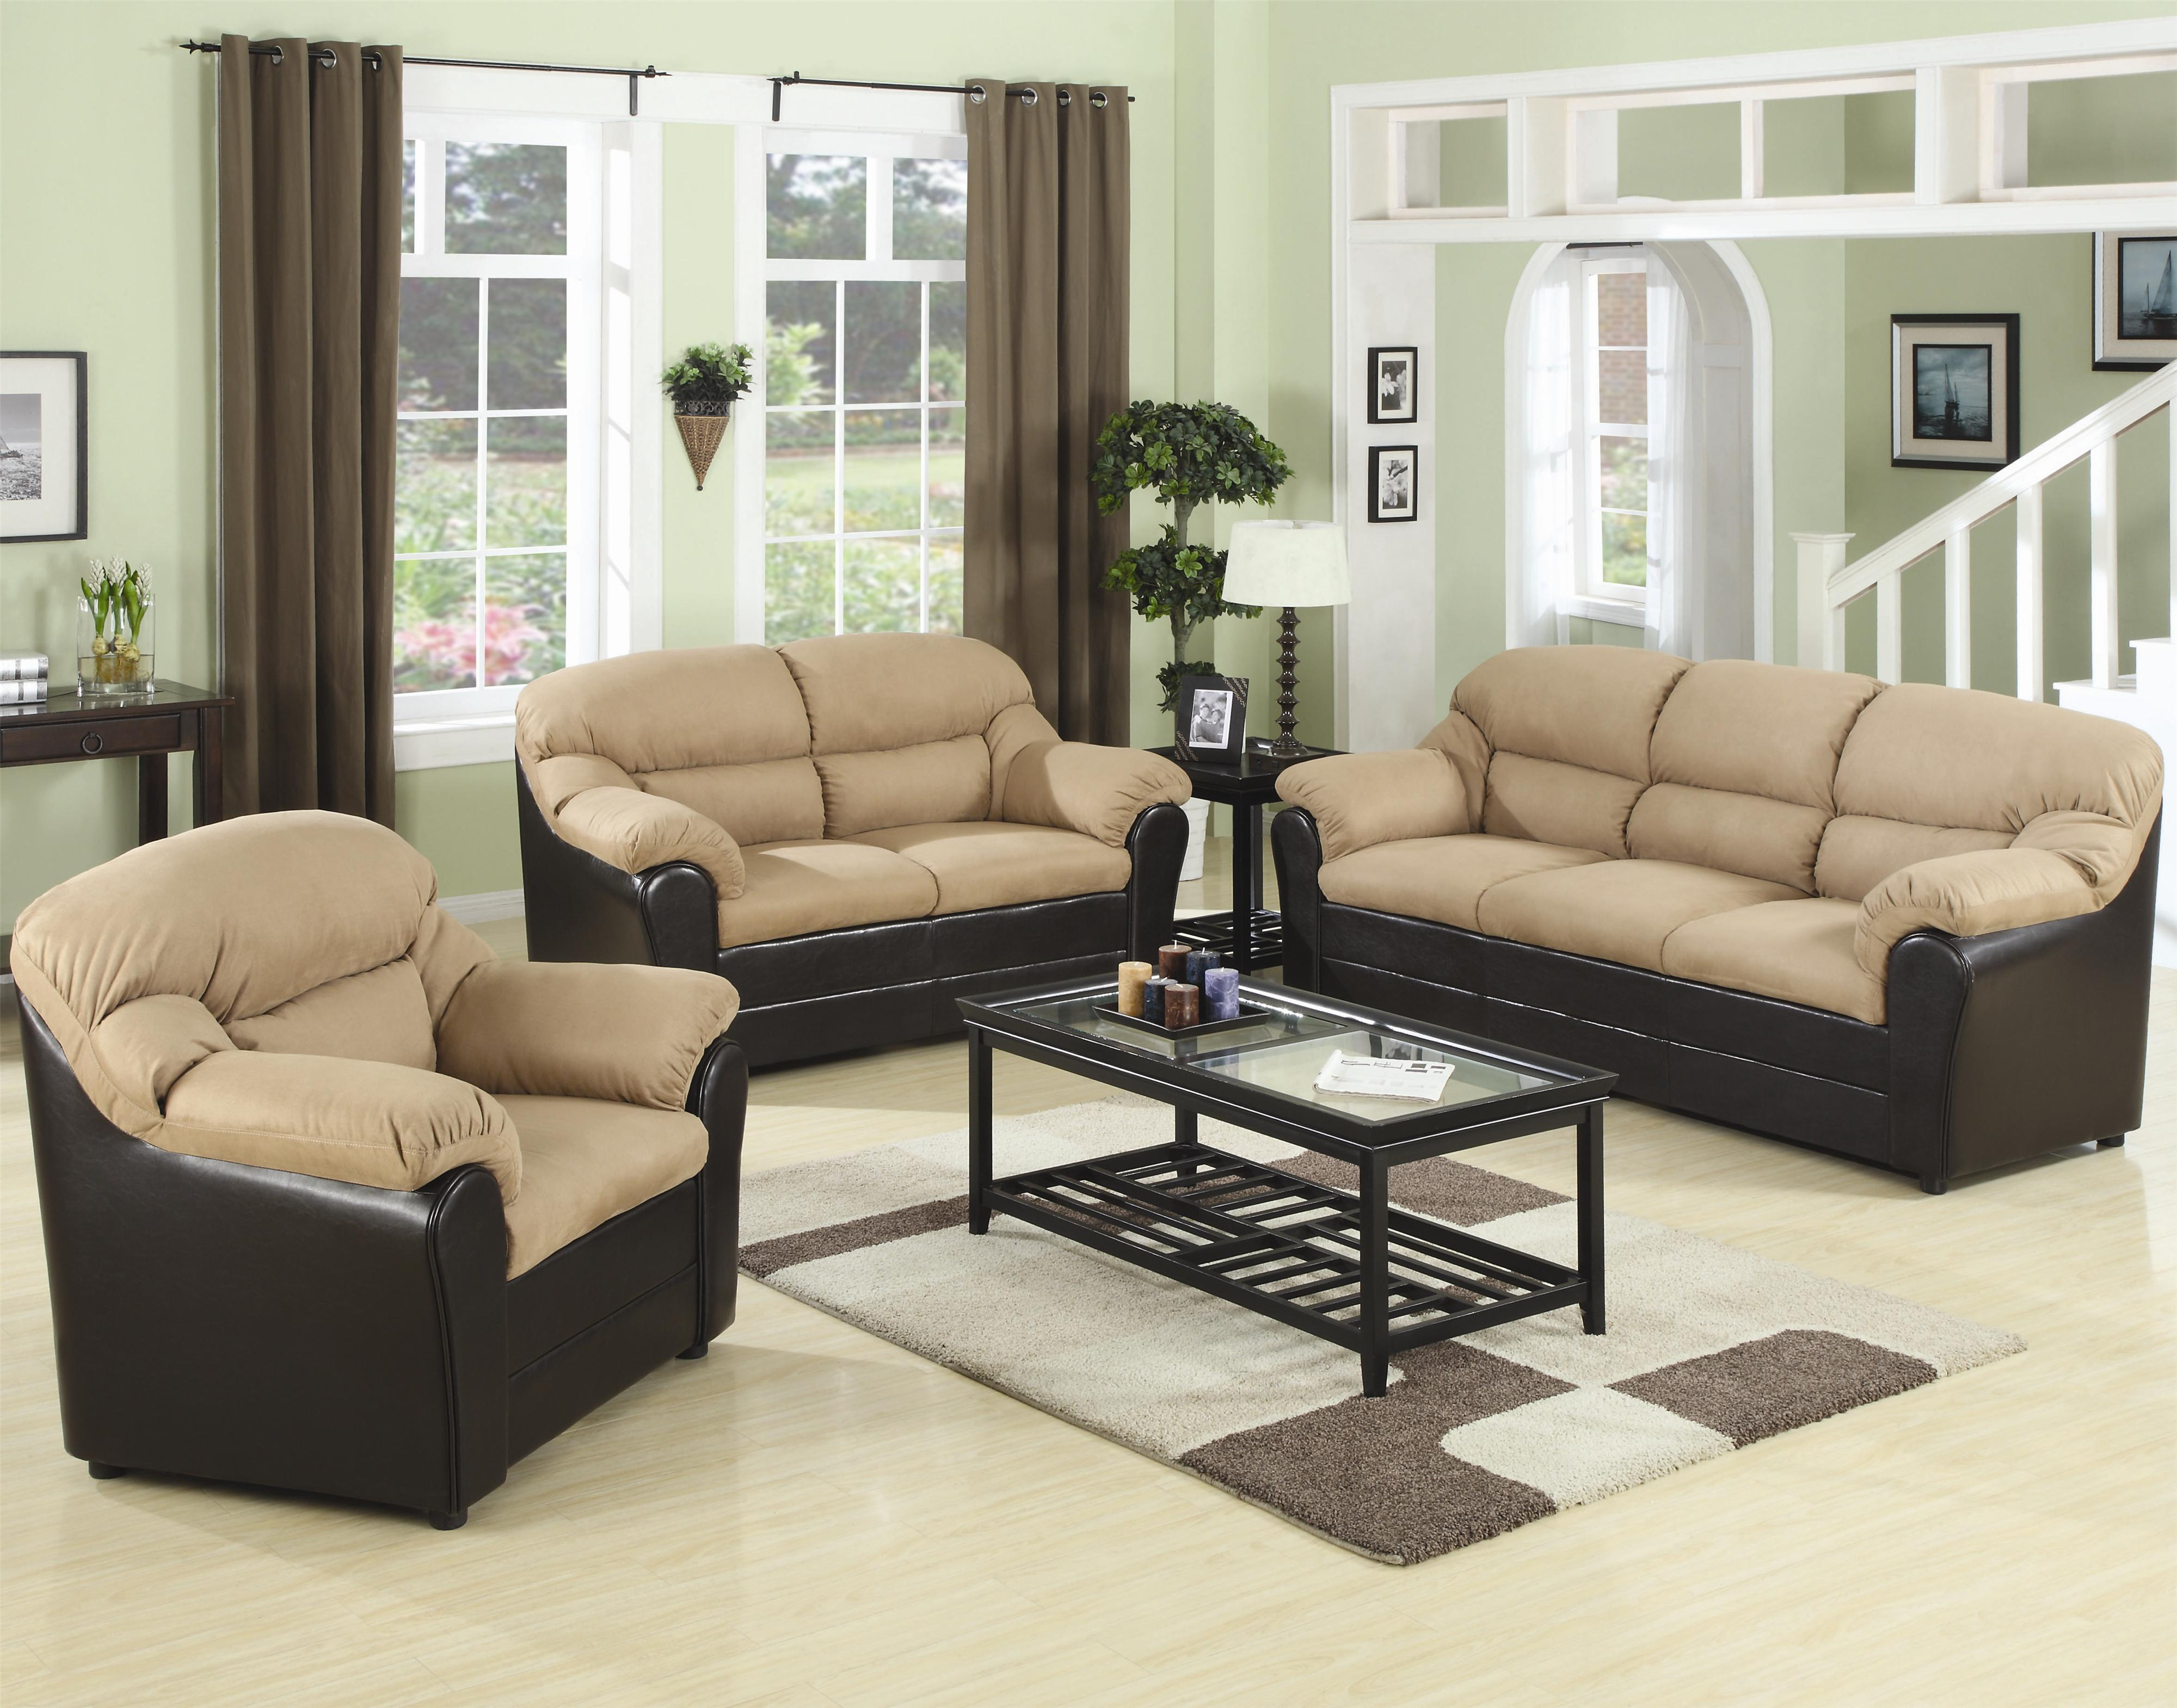 Beautiful front room furnishings for living room ideas with front room furnishings outlet